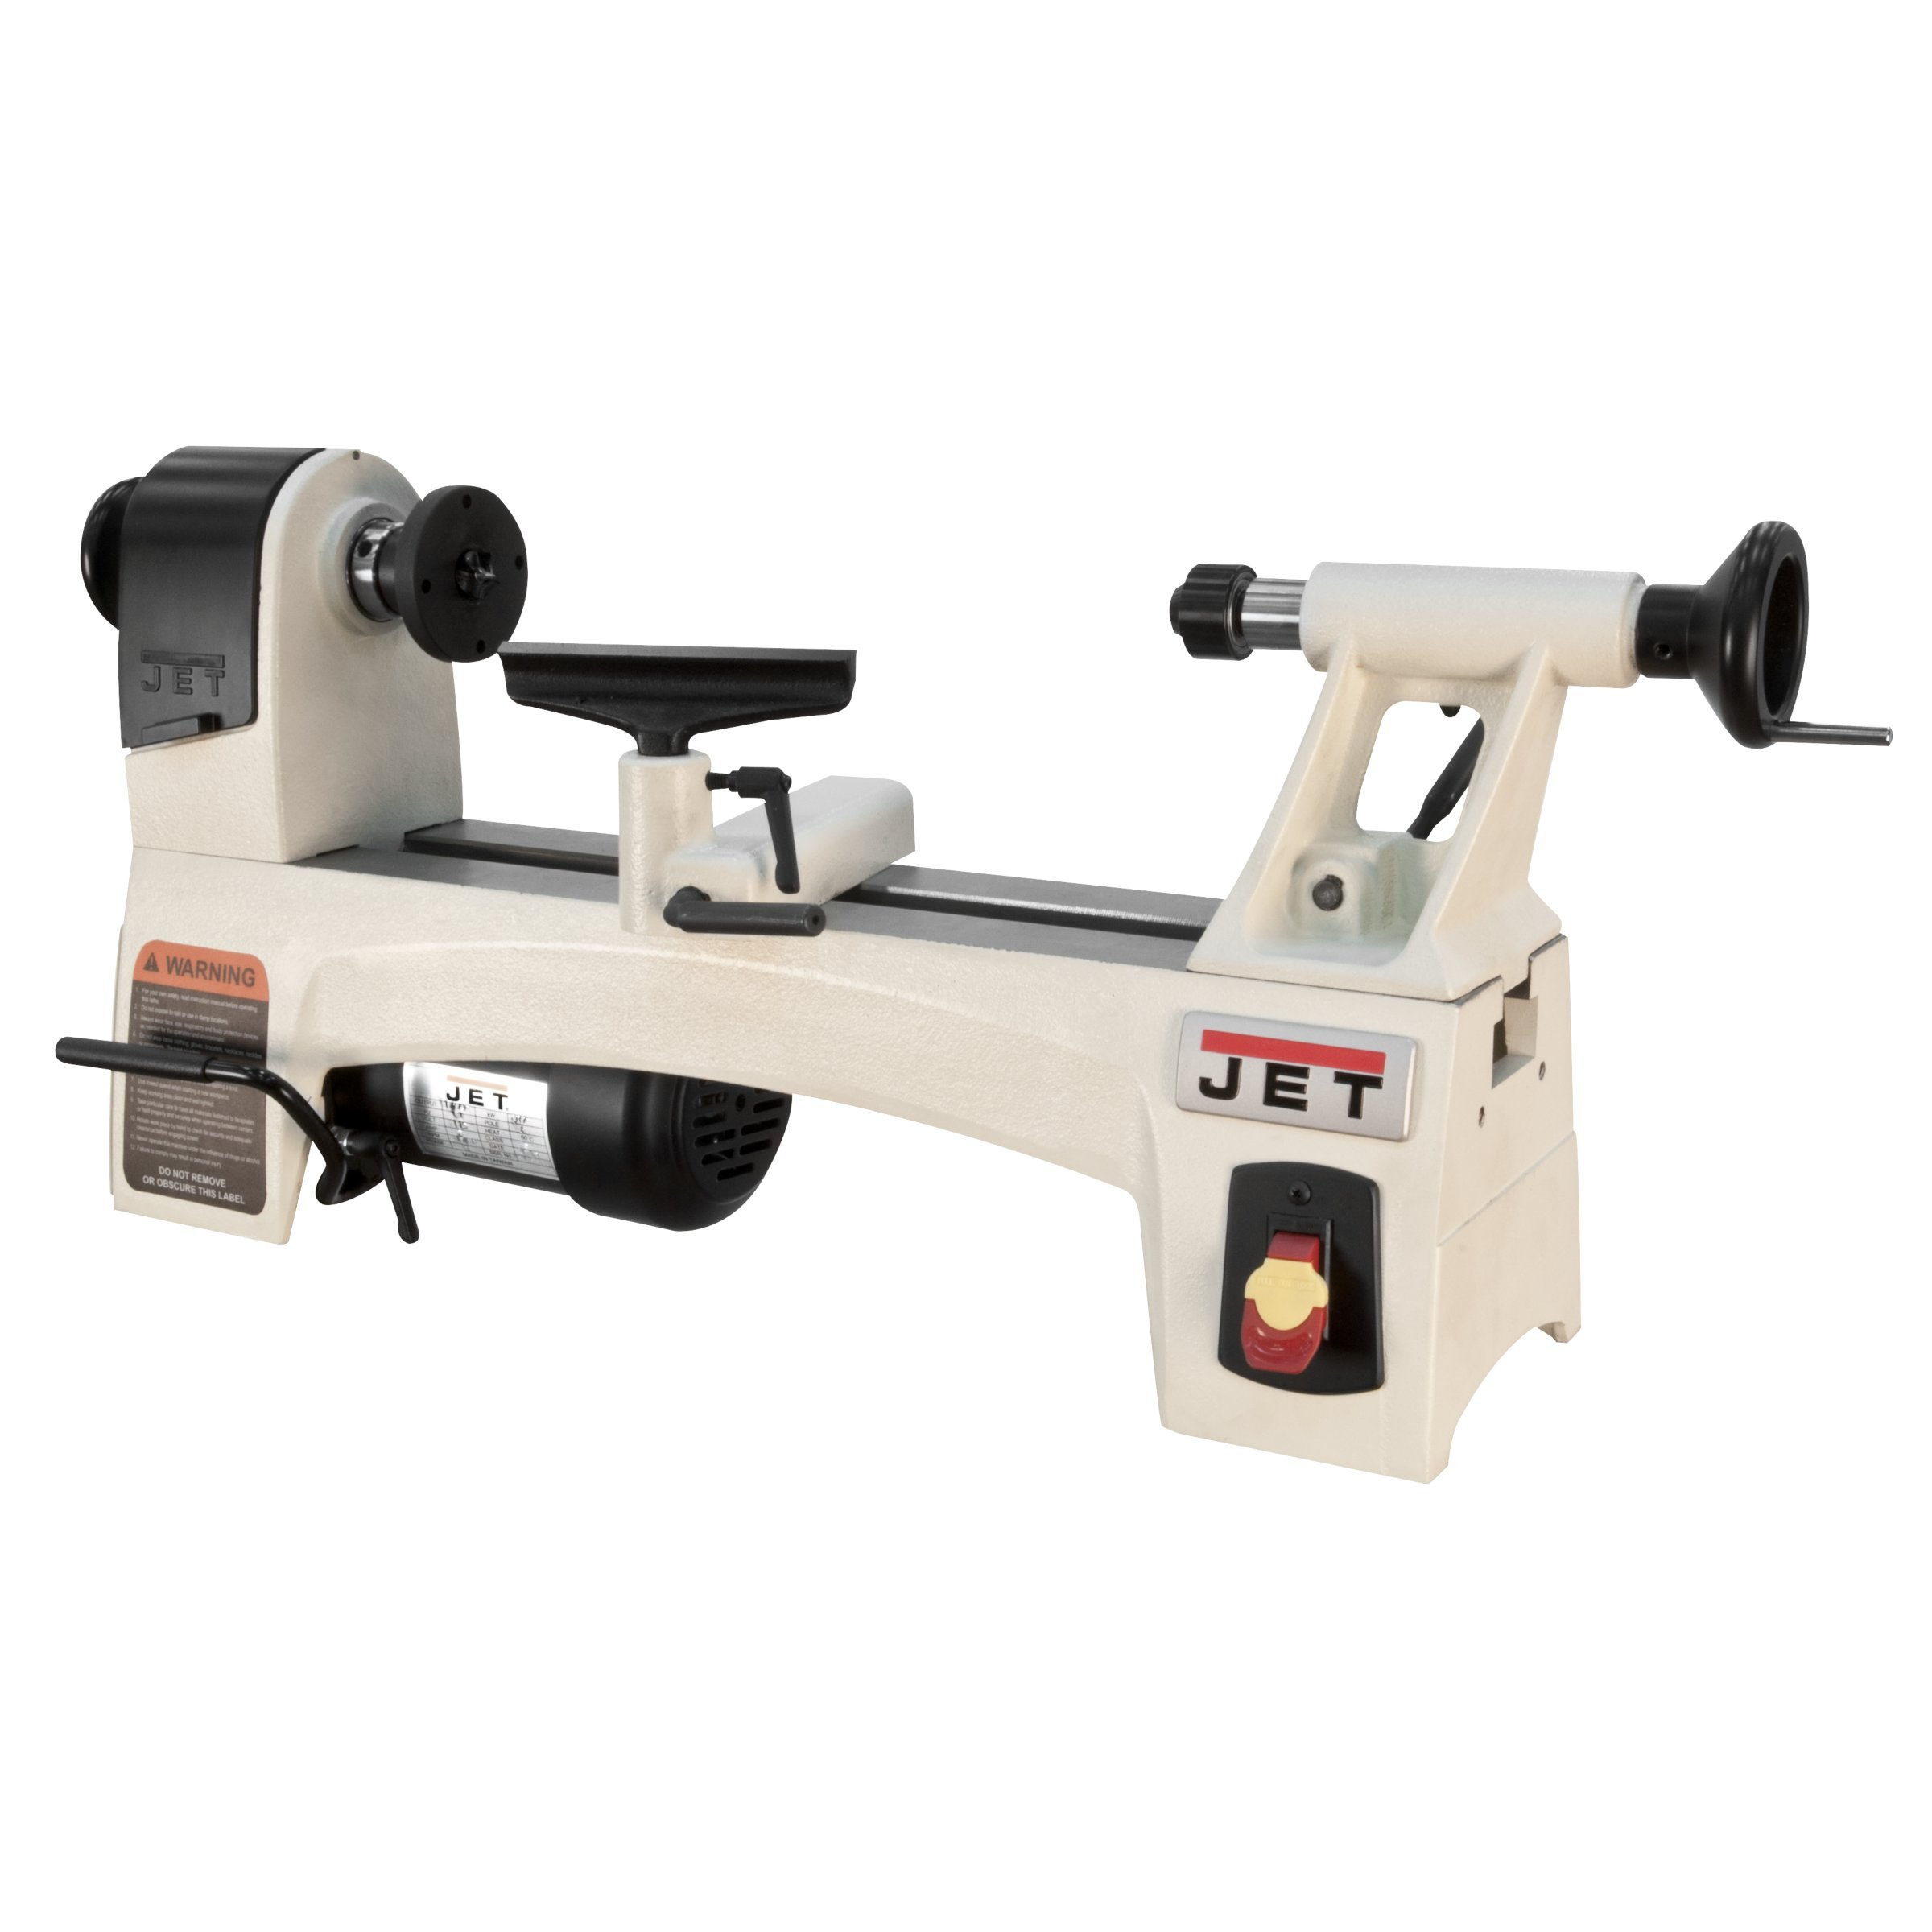 Jet JWL-1015 Wood Working Lathe